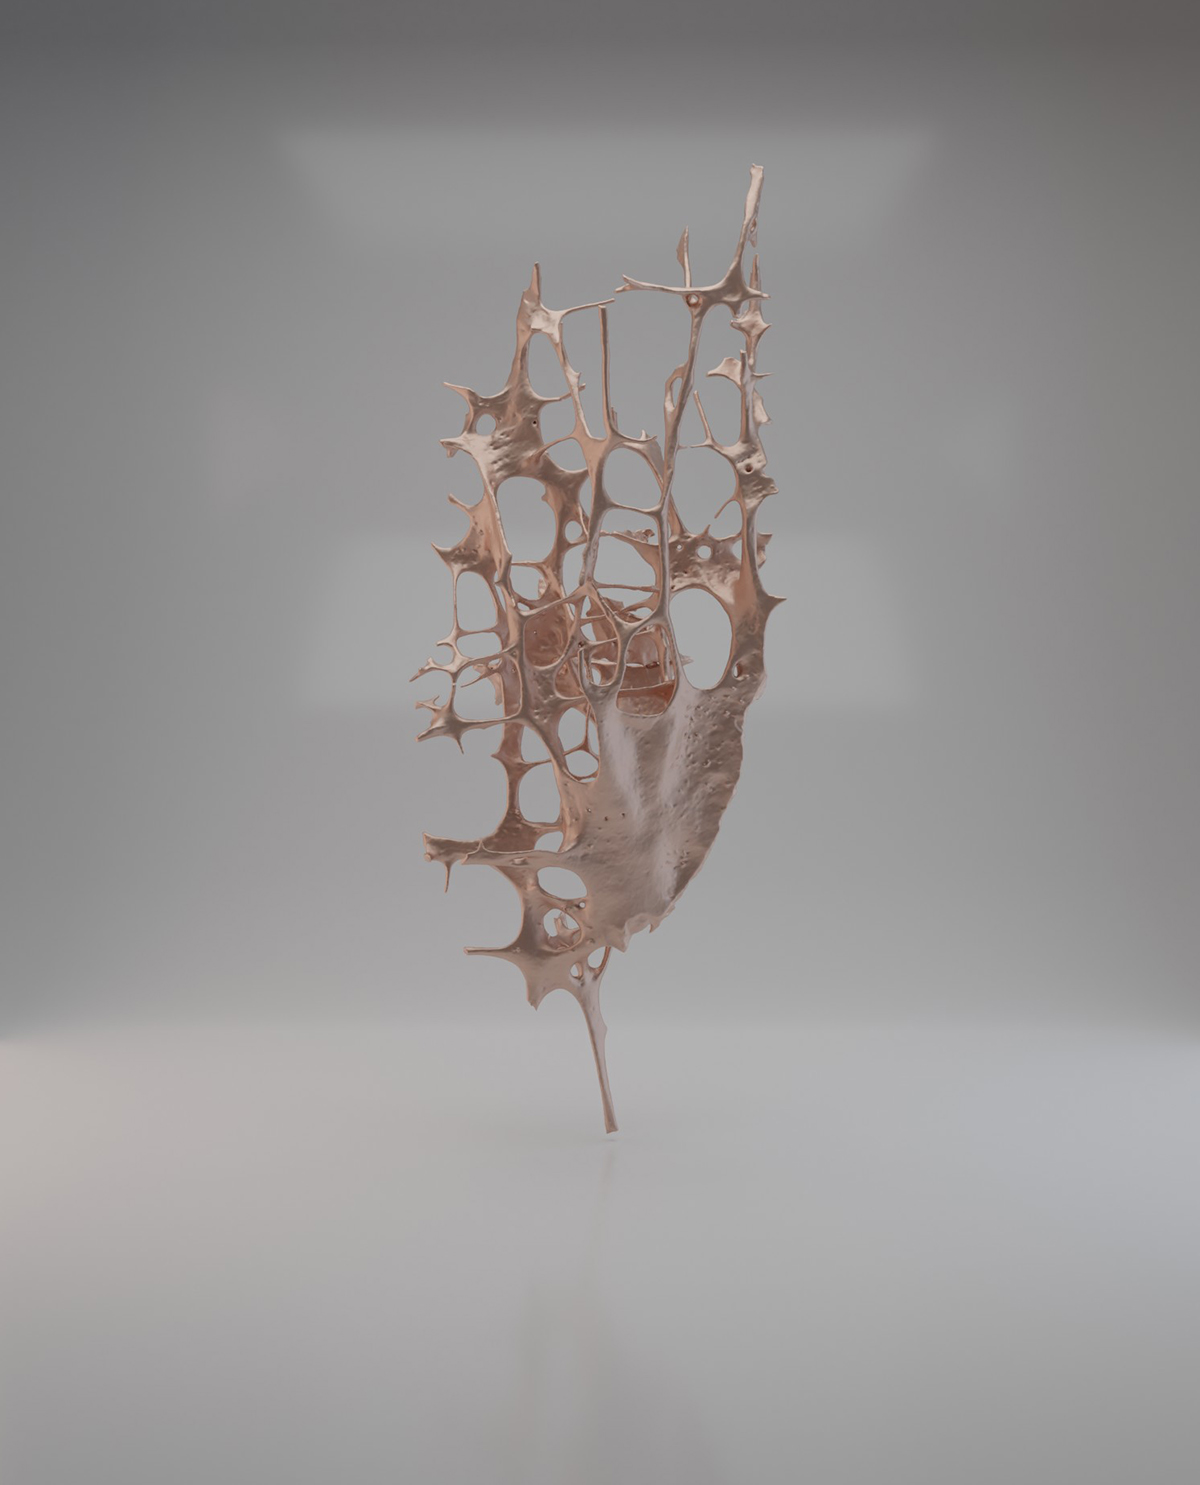 Beige structure shaped like a branching network, suspended in the air